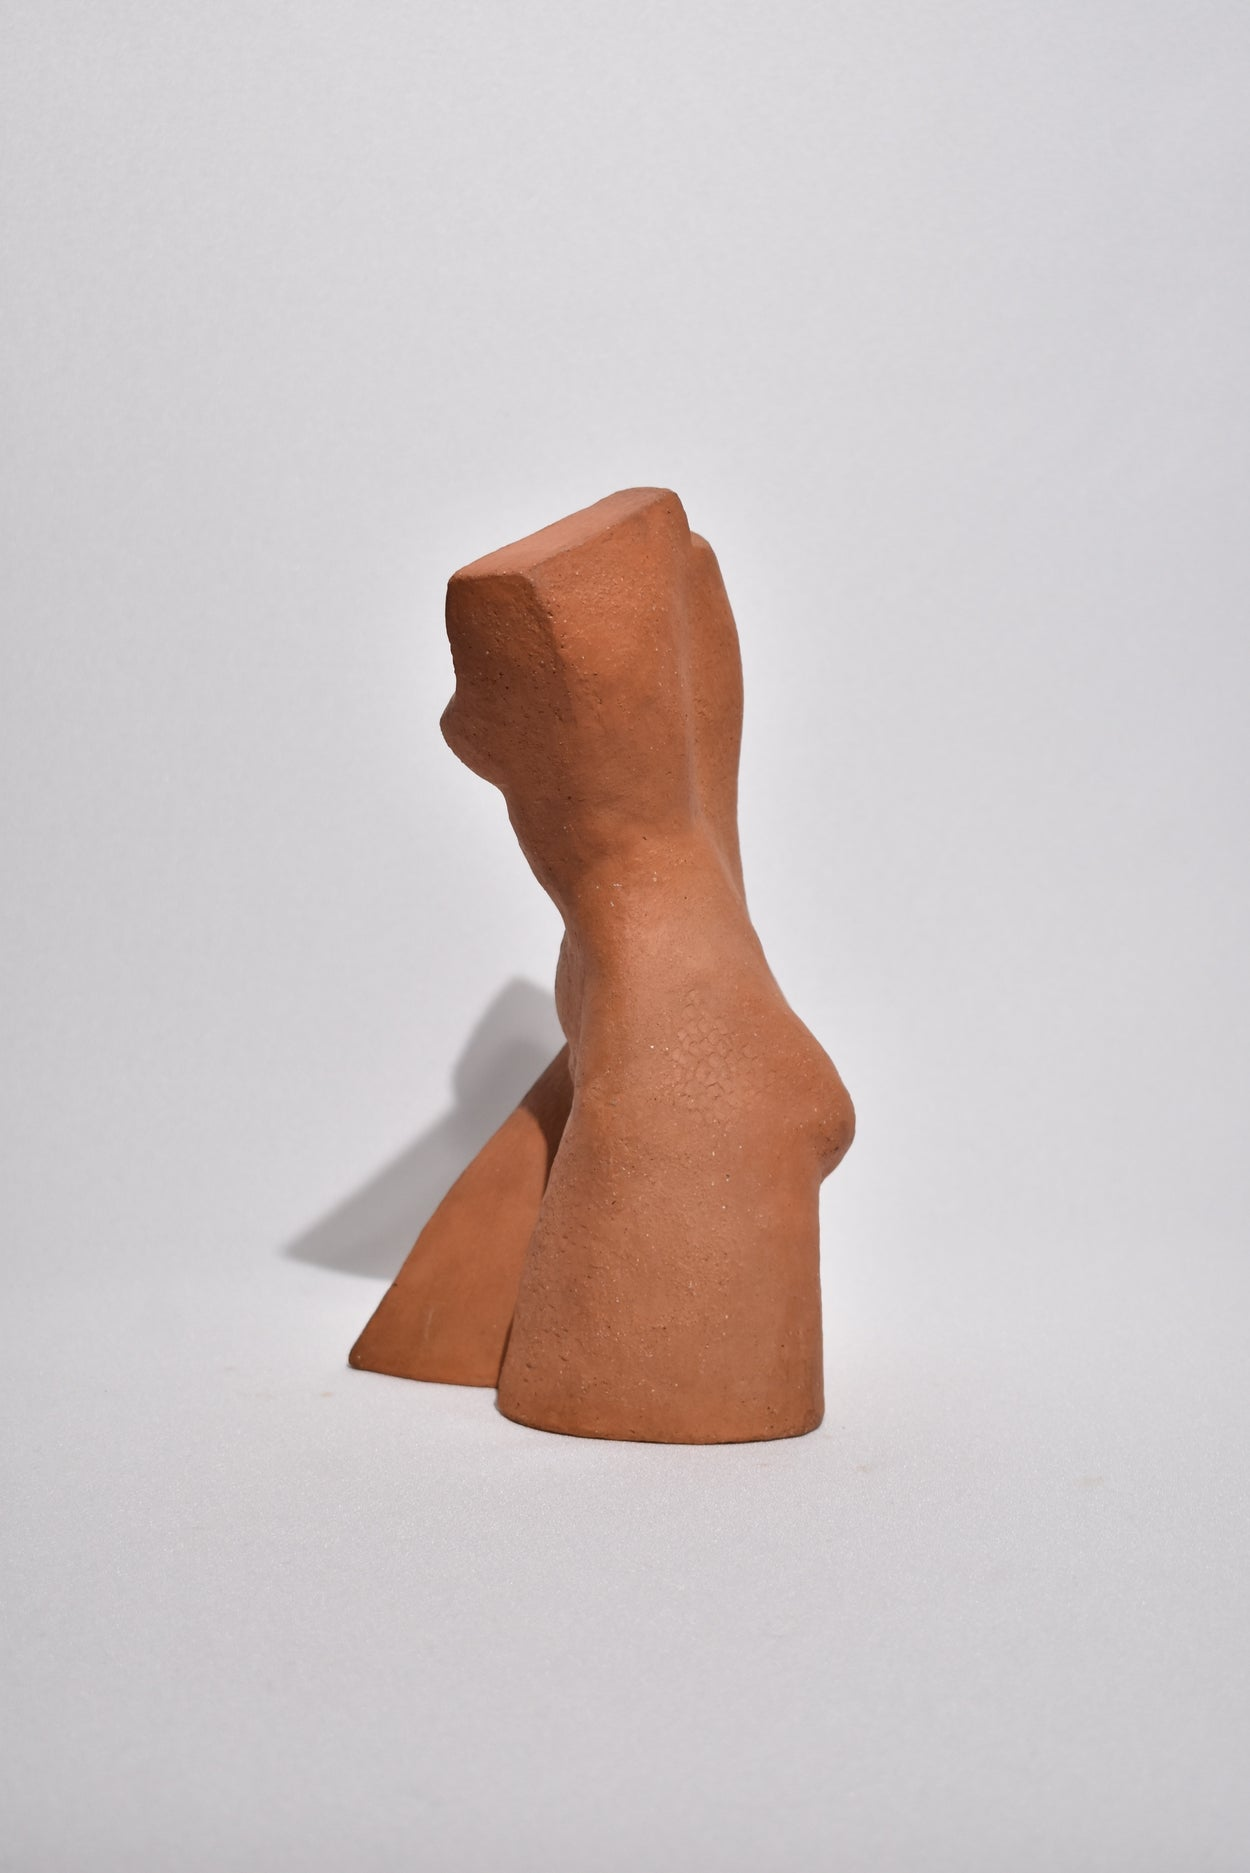 Cubist Terracotta Sculpture